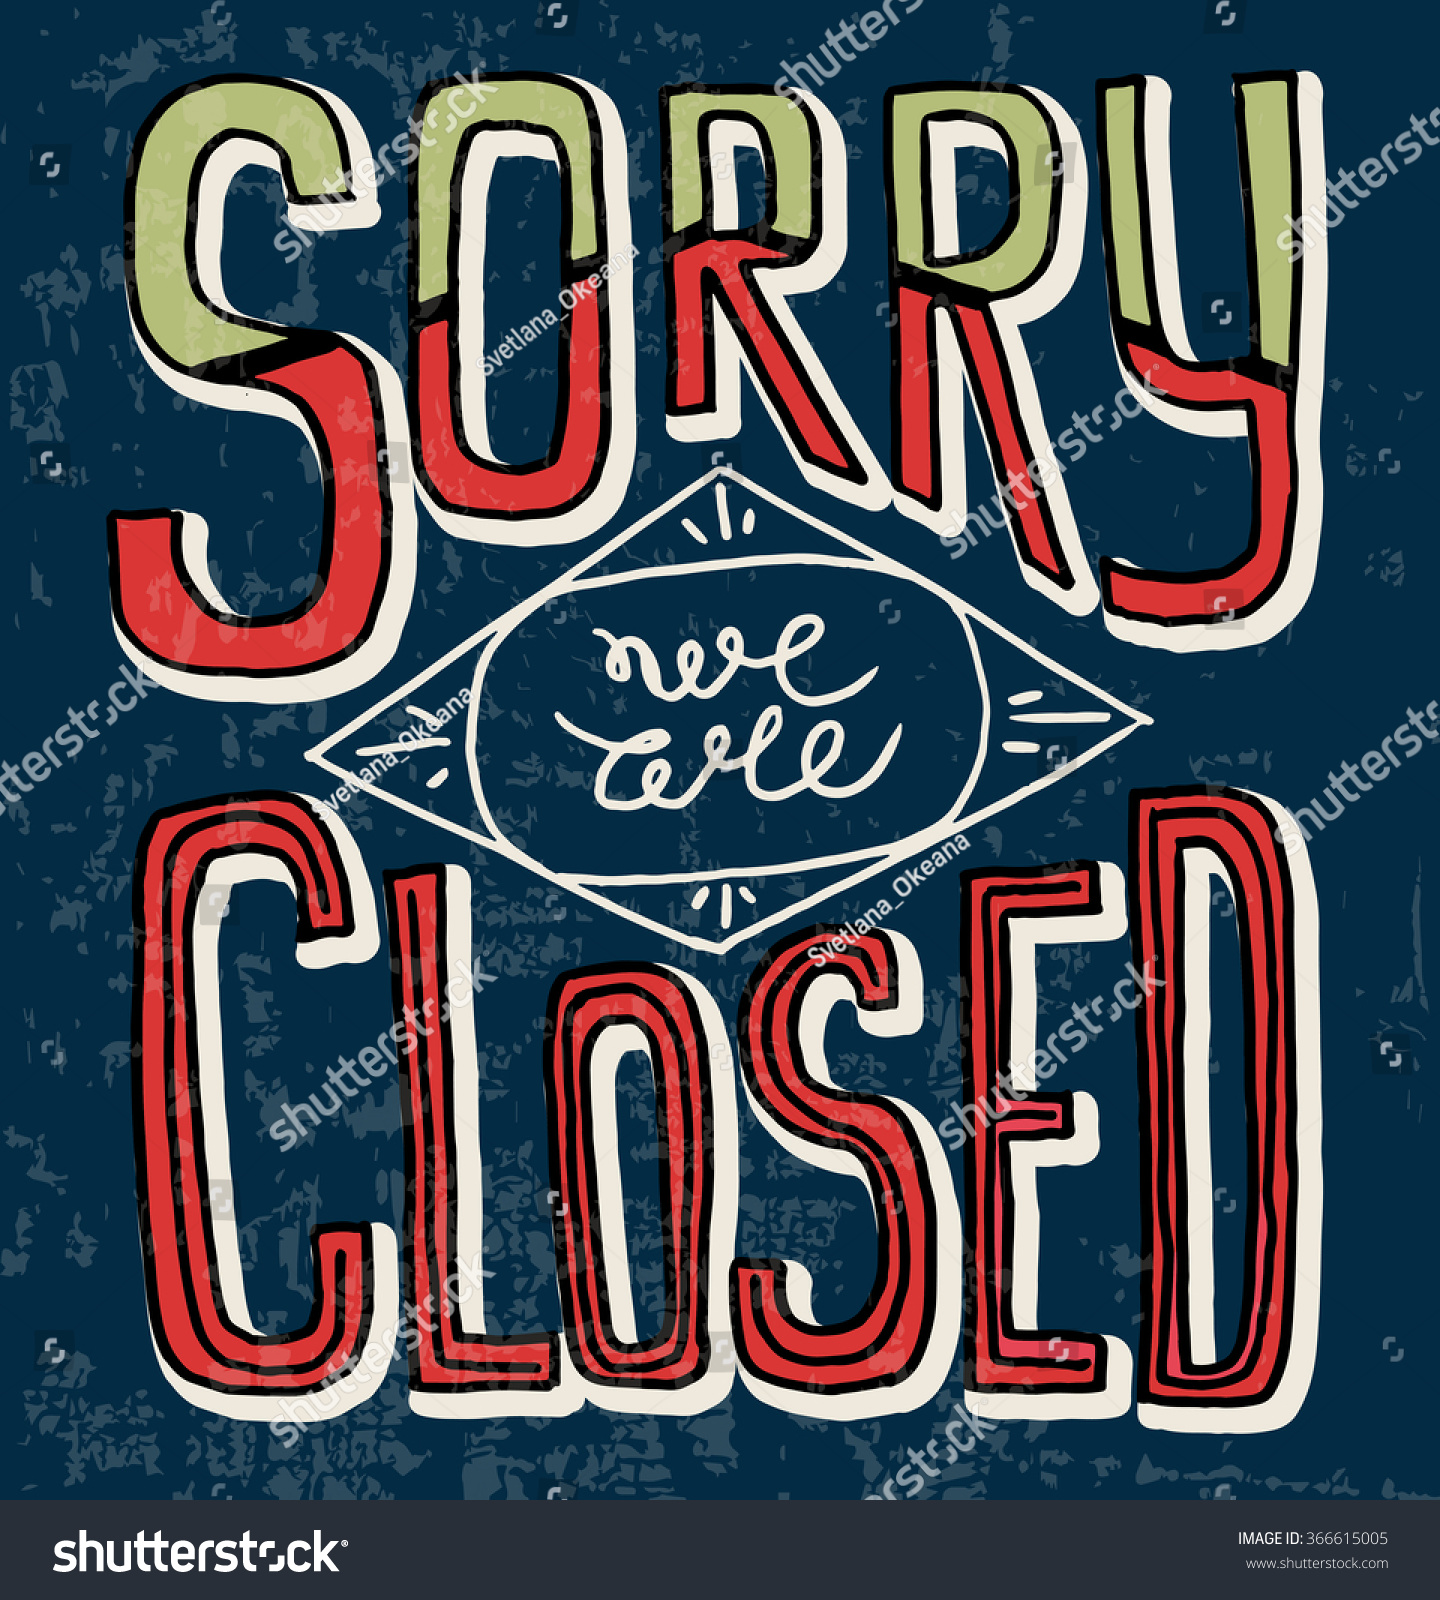 Sorry We Closed Hand Drawn Restaurant Stock Illustration